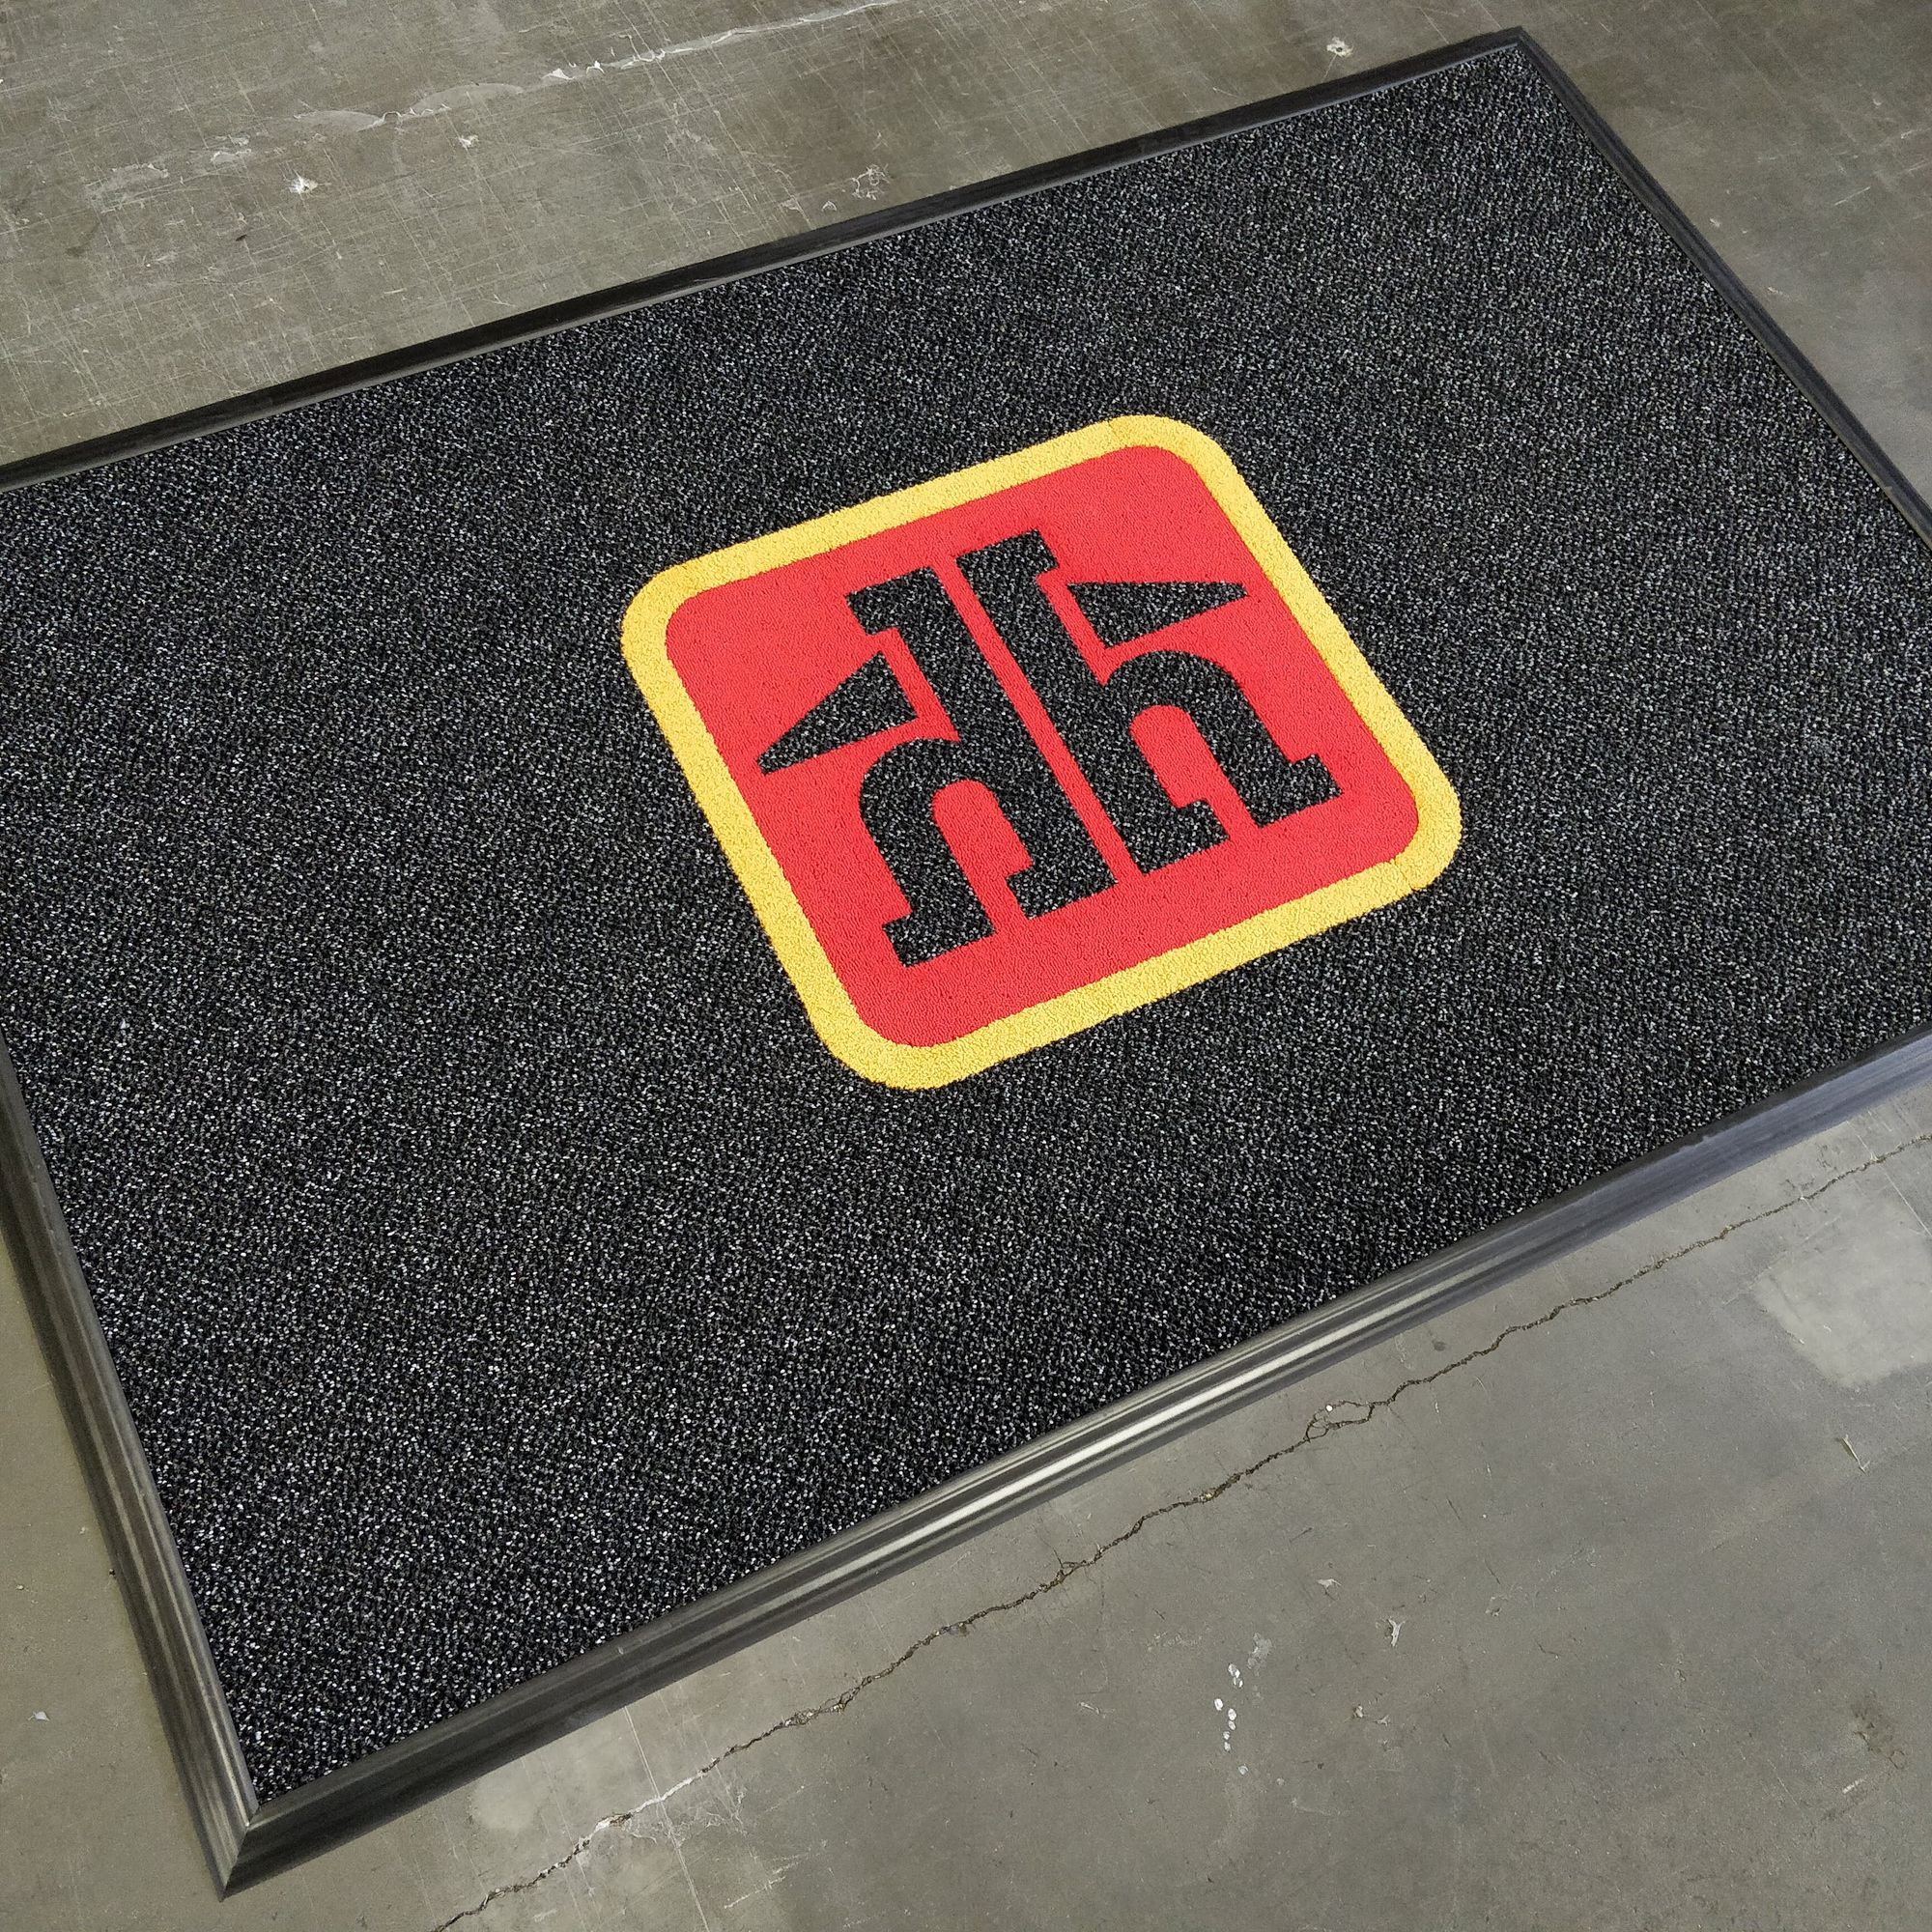 This custom inlaid logo mat features our Duromat spaghetti